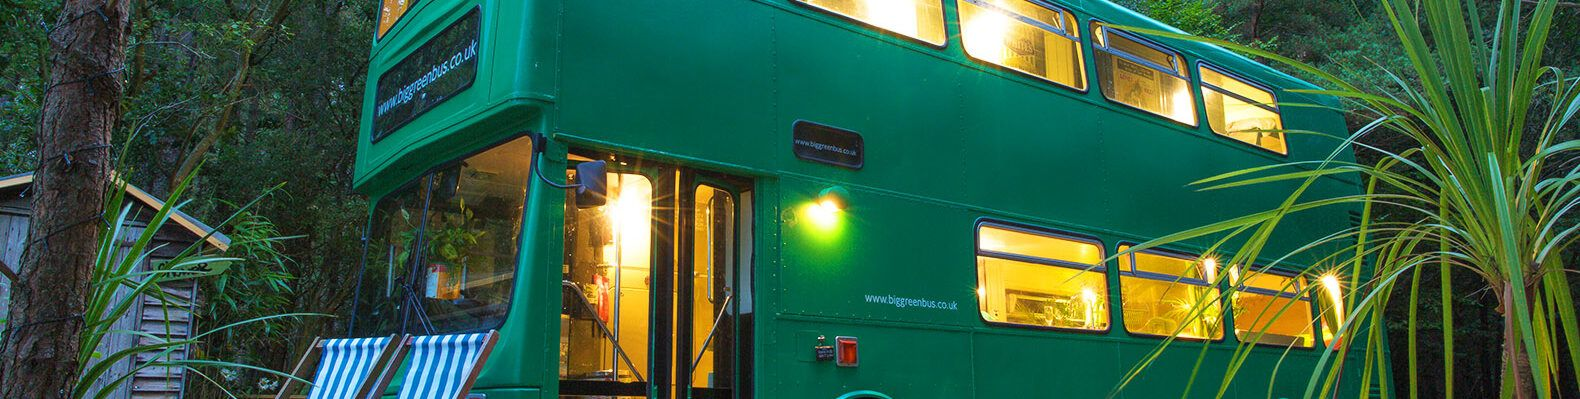 A sideview of the green bus.